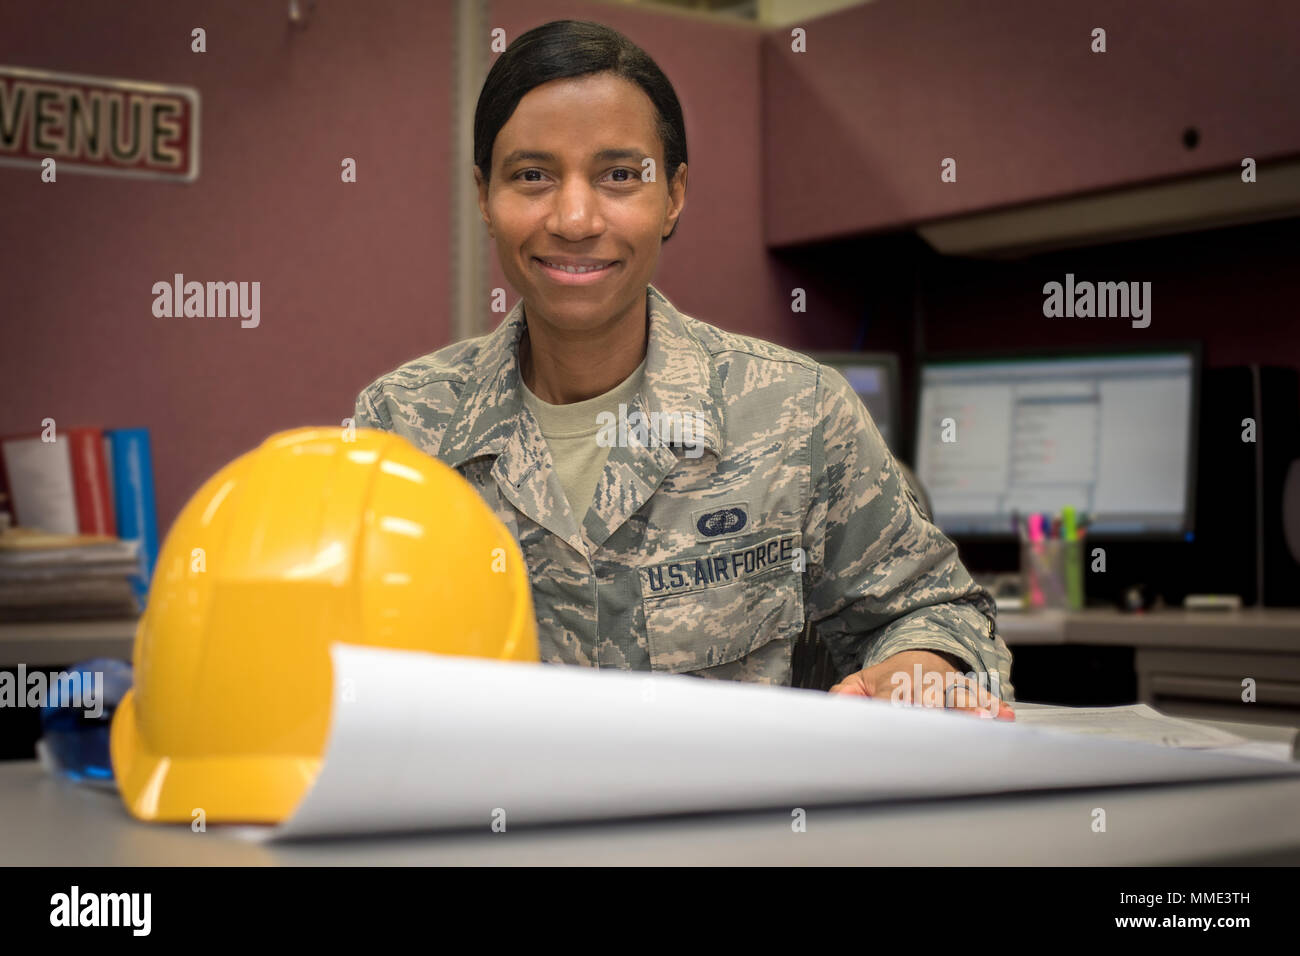 Airman 1st Class Sherry Rhoden, 374th Contracting Squadron contract specialist, checks a project map, Oct. 16, 2017, at Yokota Air Base, Japan. Rhoden was selected as Airlifter of the Week for her dedication to purchasing commodity, services and  construction contracts for the Pacific area of responsibility. (U.S. Air Force Photo by Machiko Arita) - Stock Image